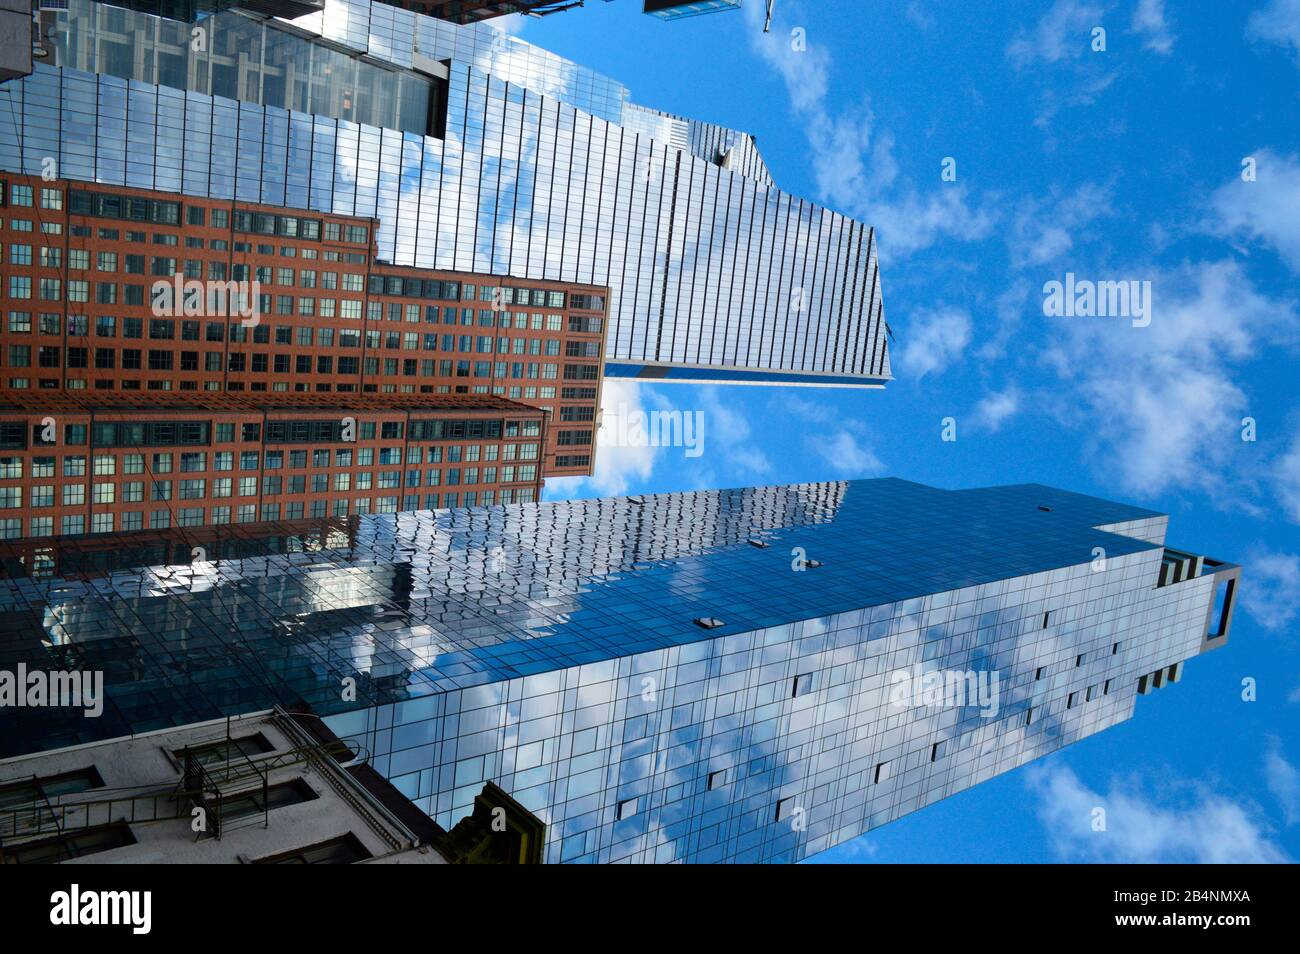 Neo Futuristic 30 Hudson Yards skyscraper designed by Architect Kohn Pedersen Fox features tallest open observation deck in NYC Stock Photo